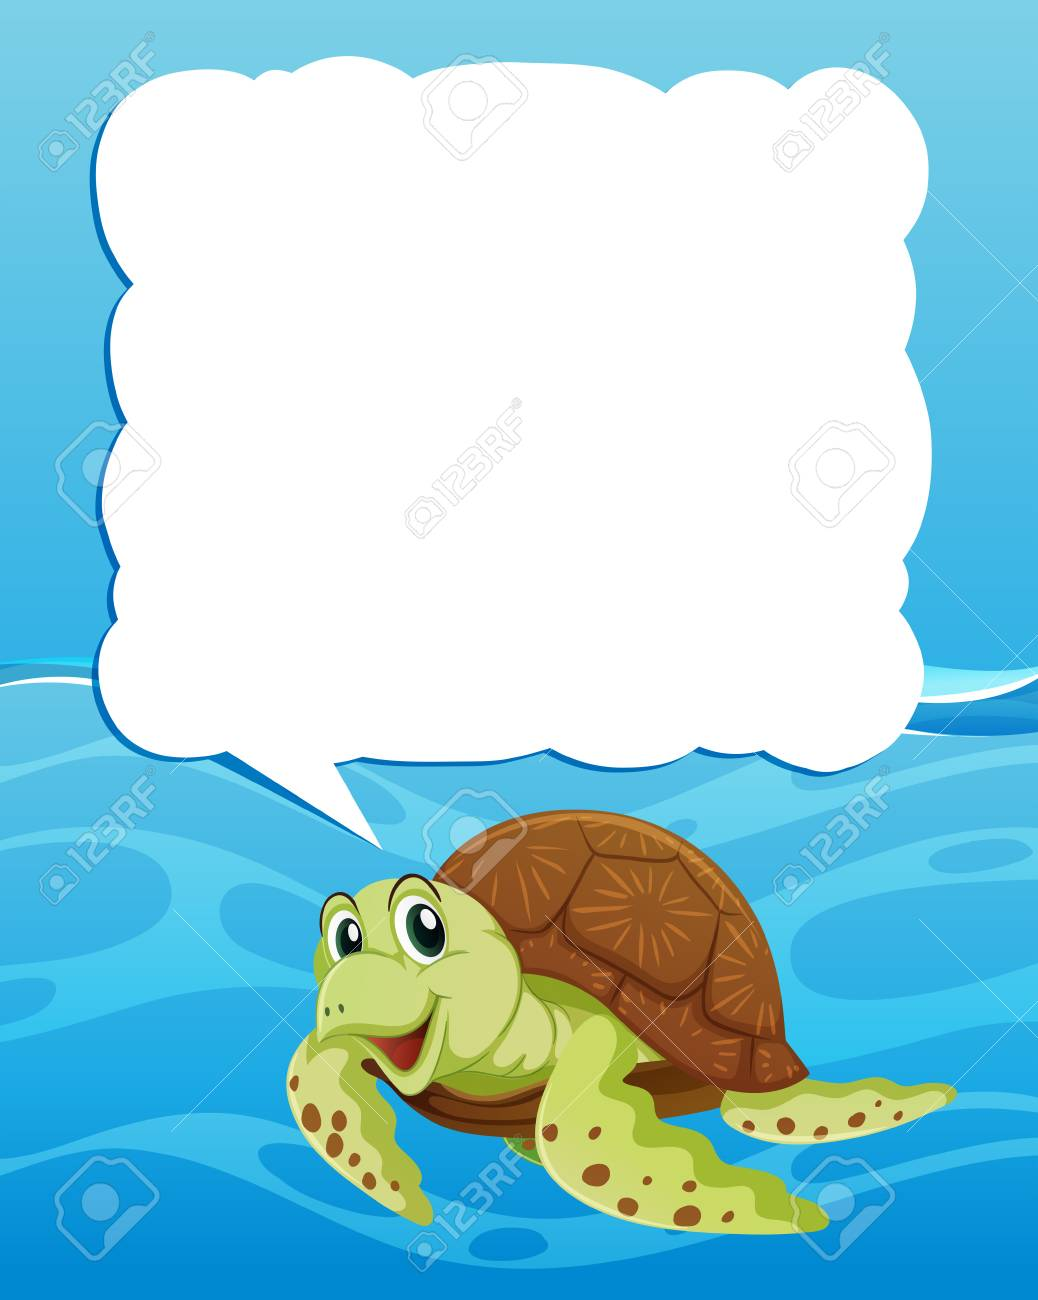 Border Template With Sea Turtle Swimming Illustration Stock Vector